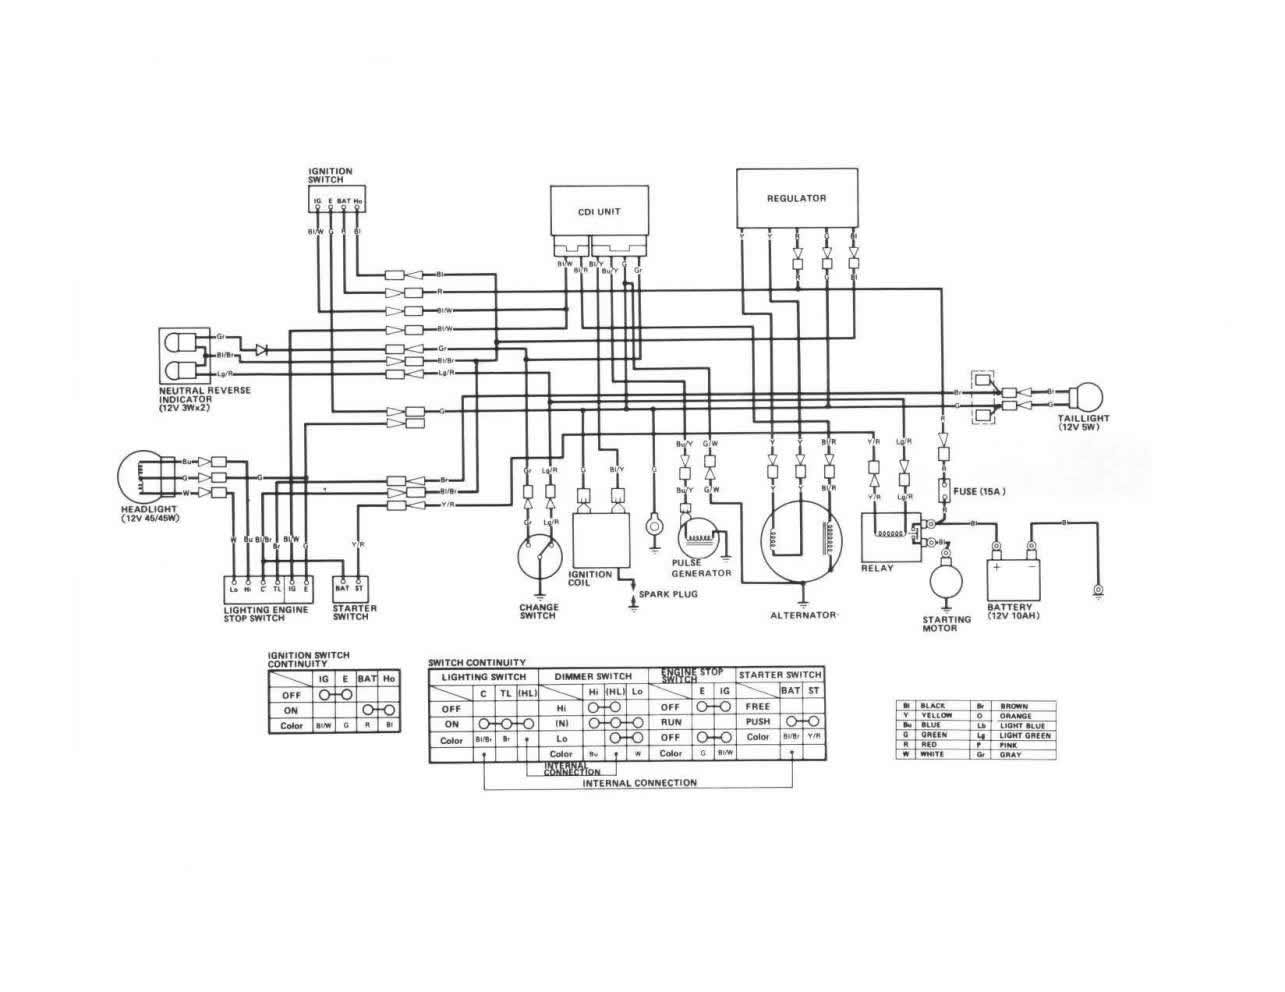 Honda Atc 200es Wiring Diagram For Honda 200M Wiring